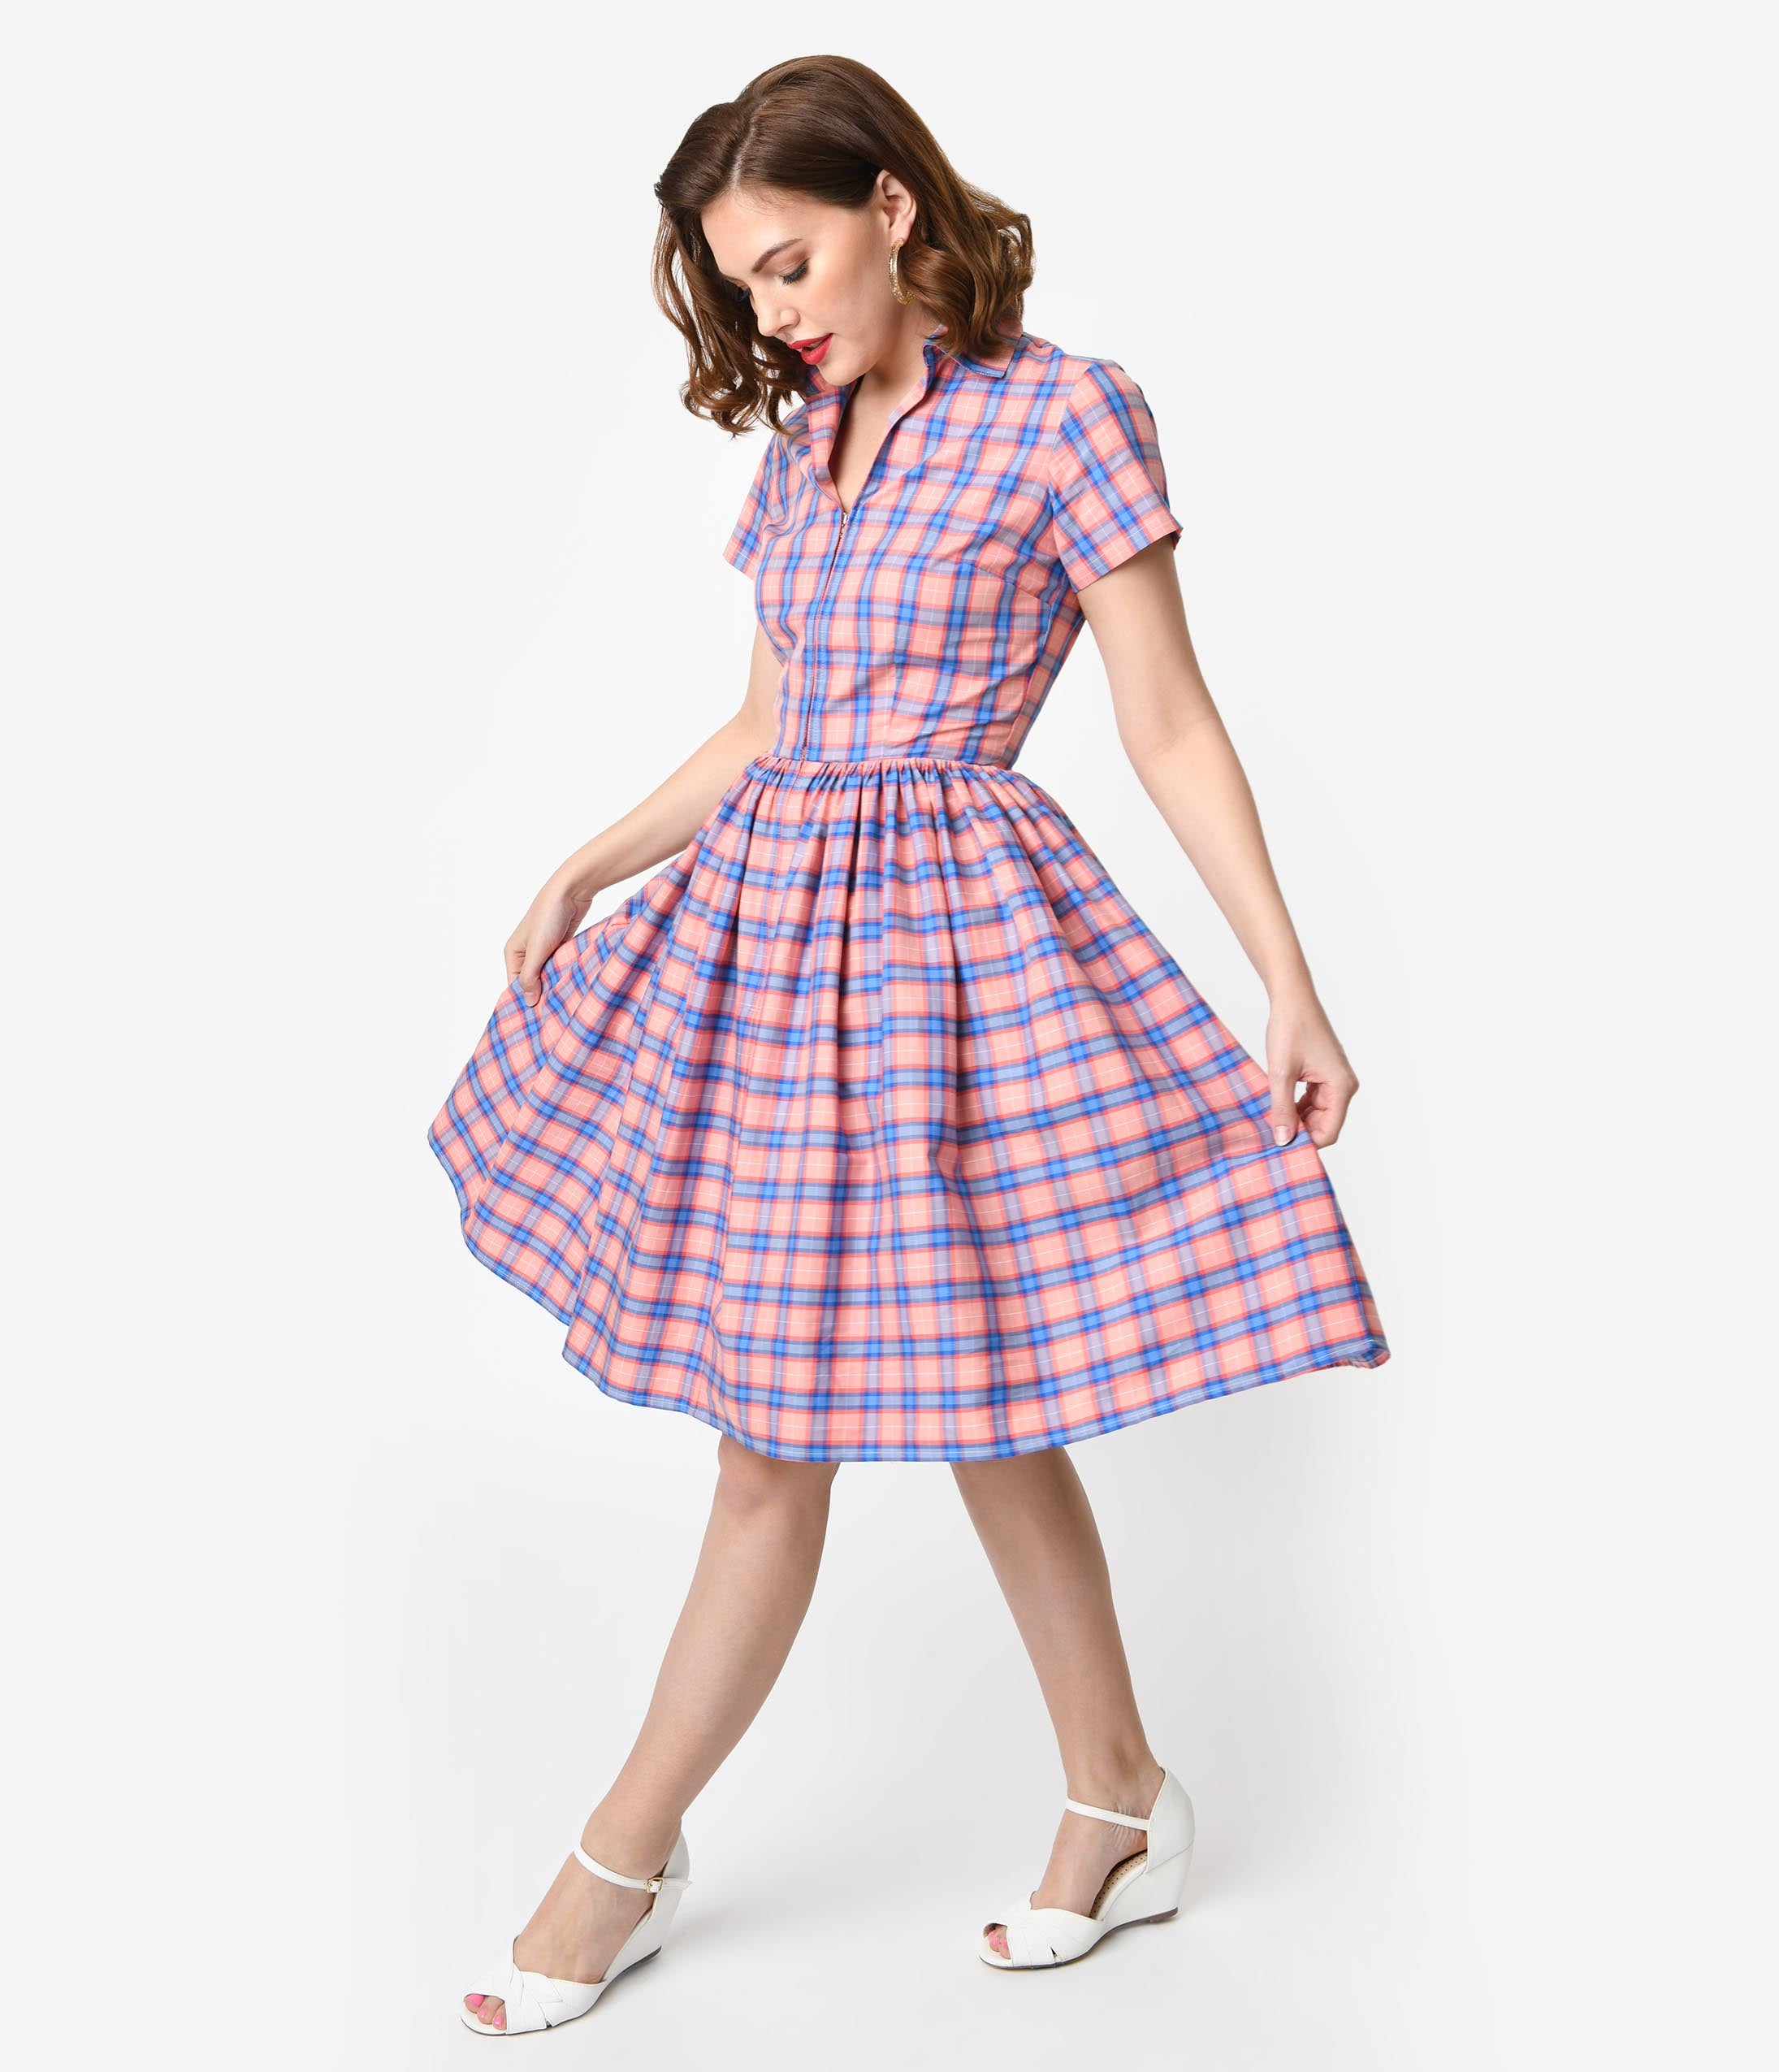 1950s Dresses, 50s Dresses | 1950s Style Dresses Bernie Dexter 1950S Style Blue  Pink Plaid Cotton Short Sleeve Francis Swing Dress $96.00 AT vintagedancer.com